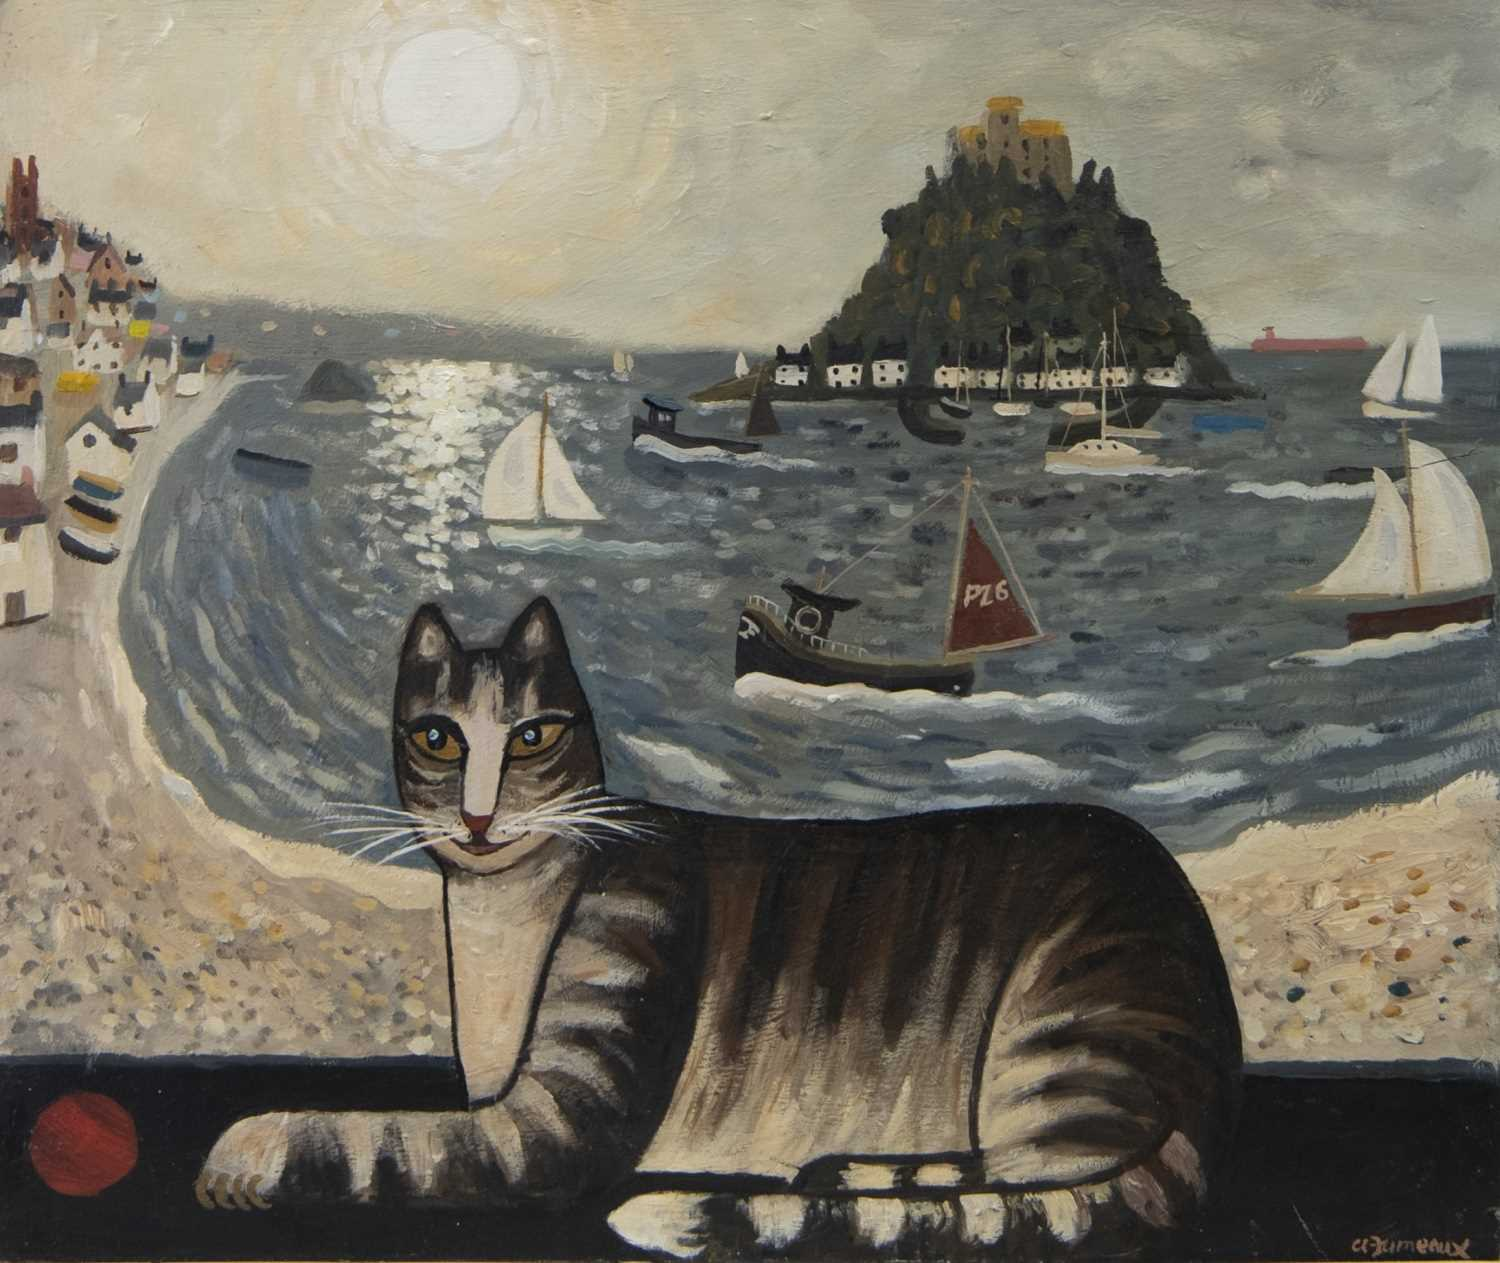 Lot 53 - PLAYFUL IZZY AT PENZANCE, AN OIL BY ALAN FURNEAUX